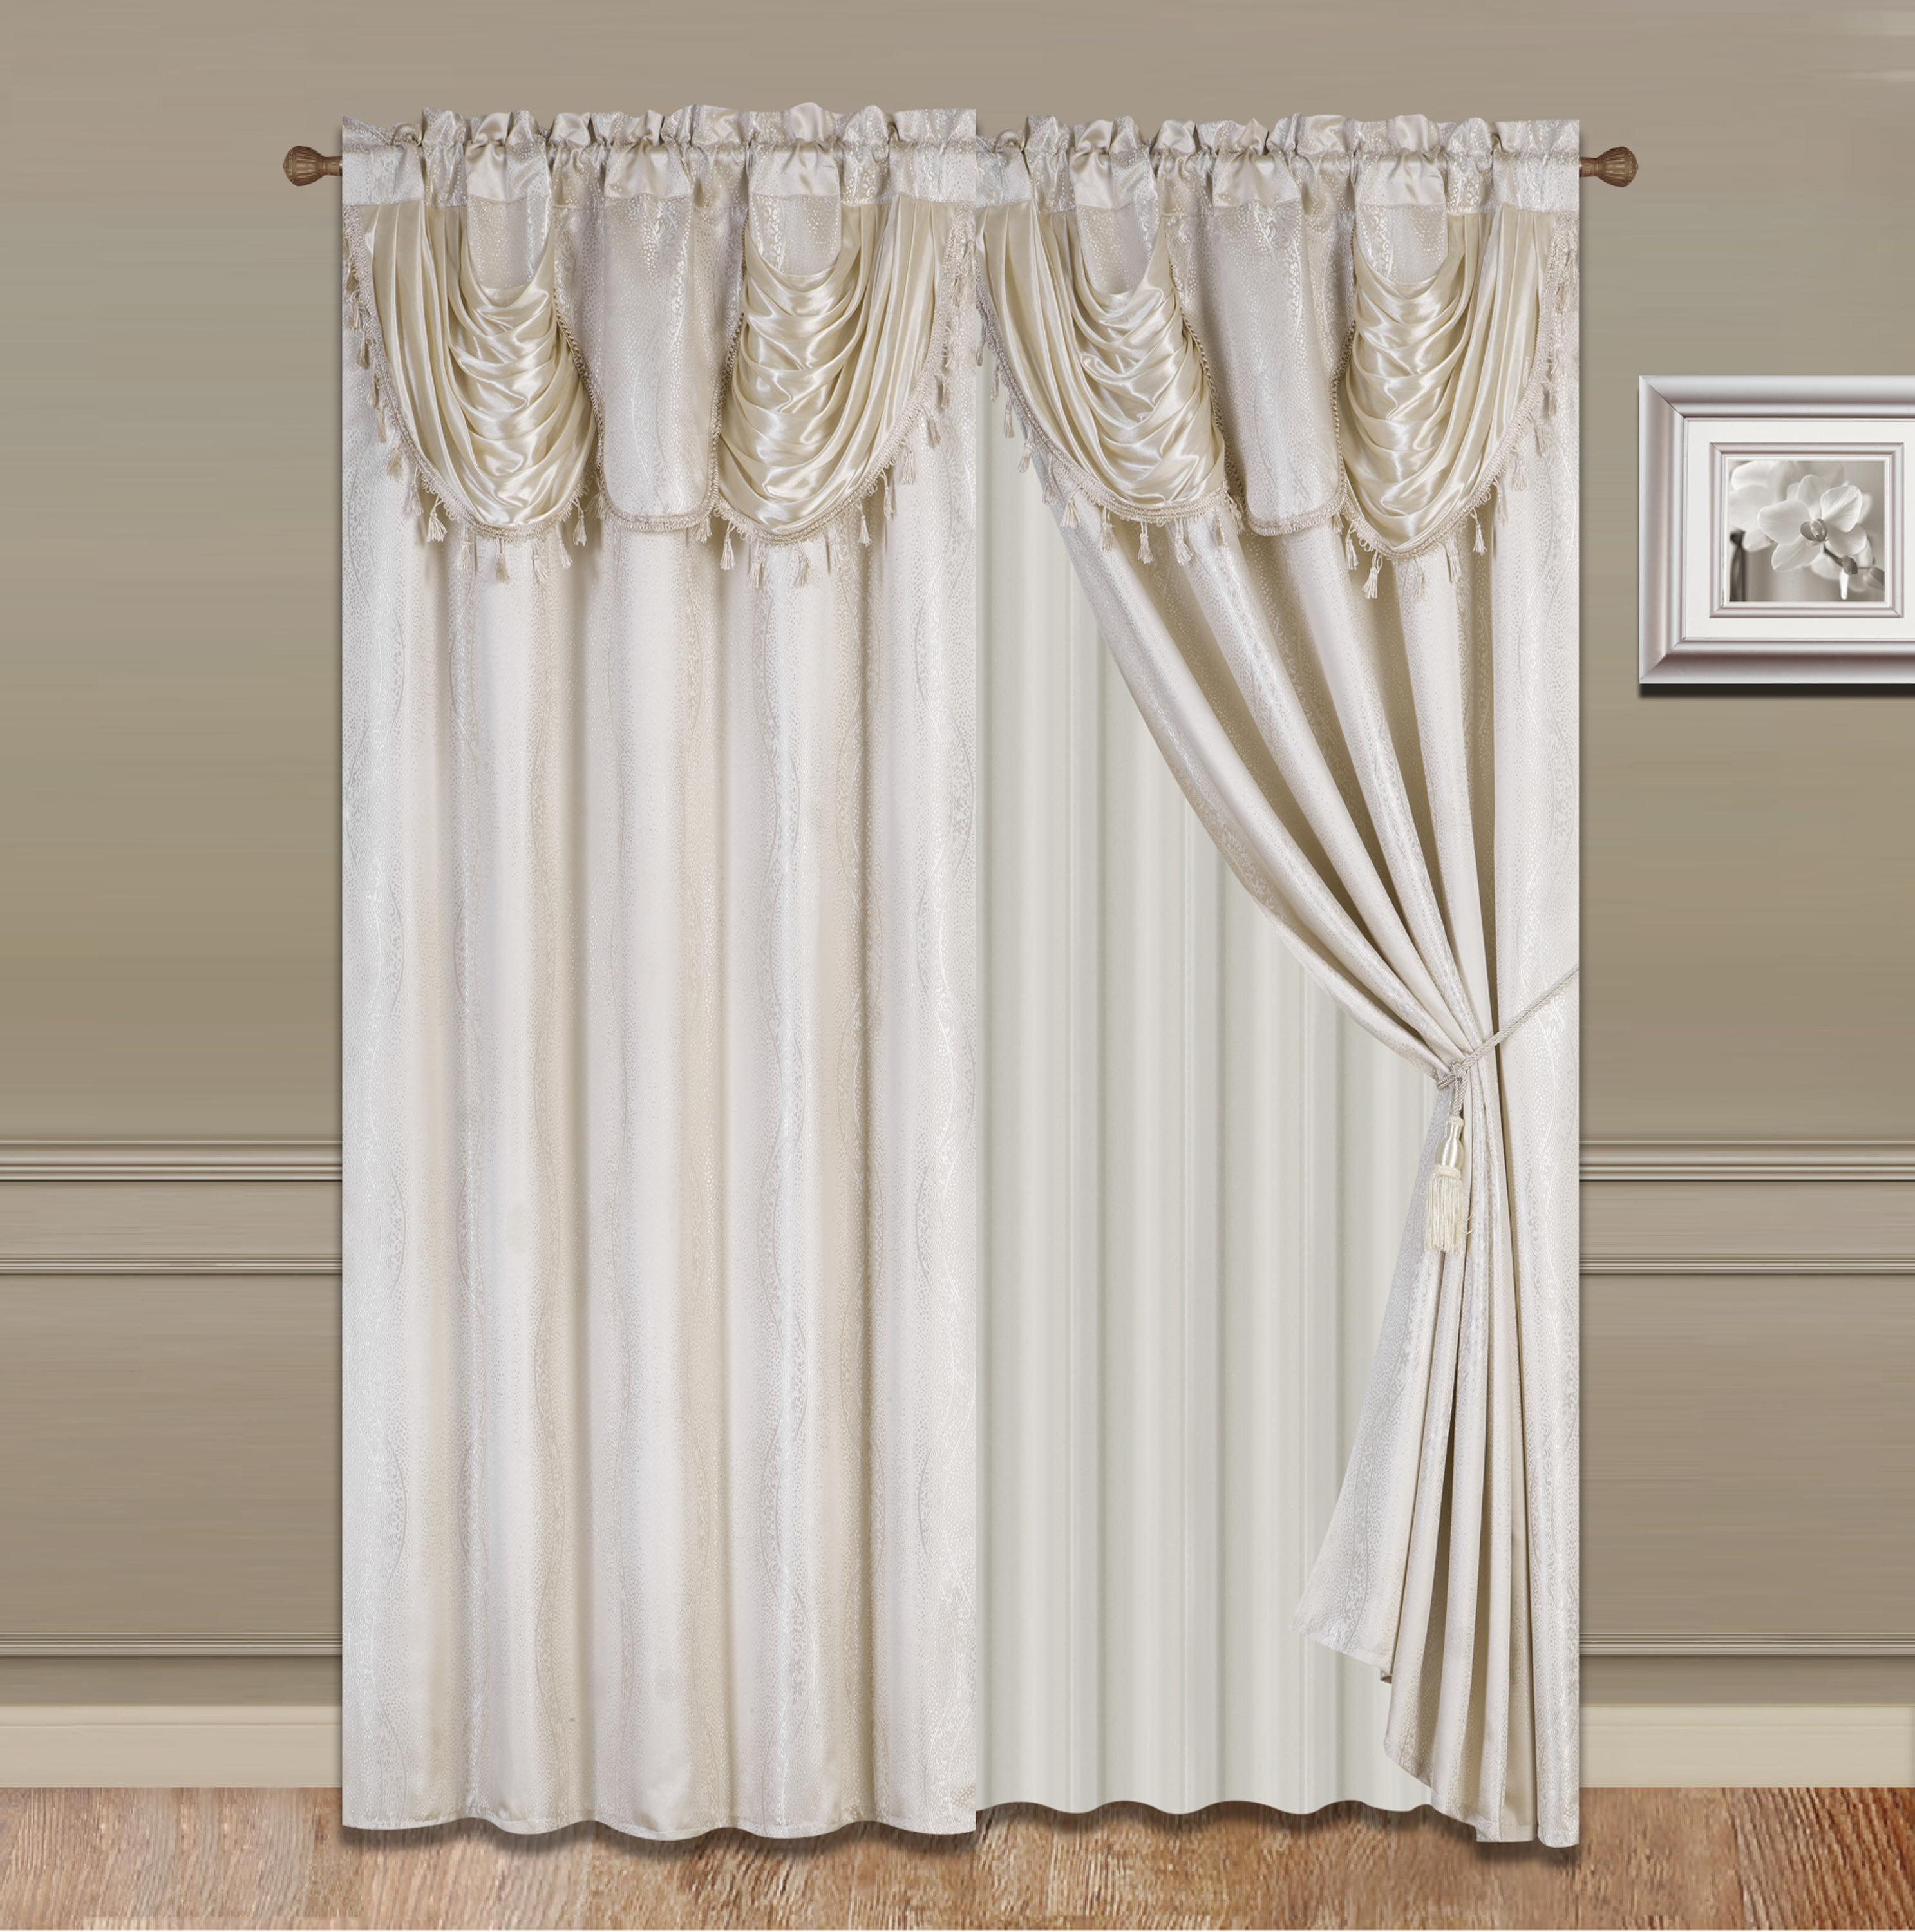 curtains for sale curtains for sale suppliers and at alibabacom